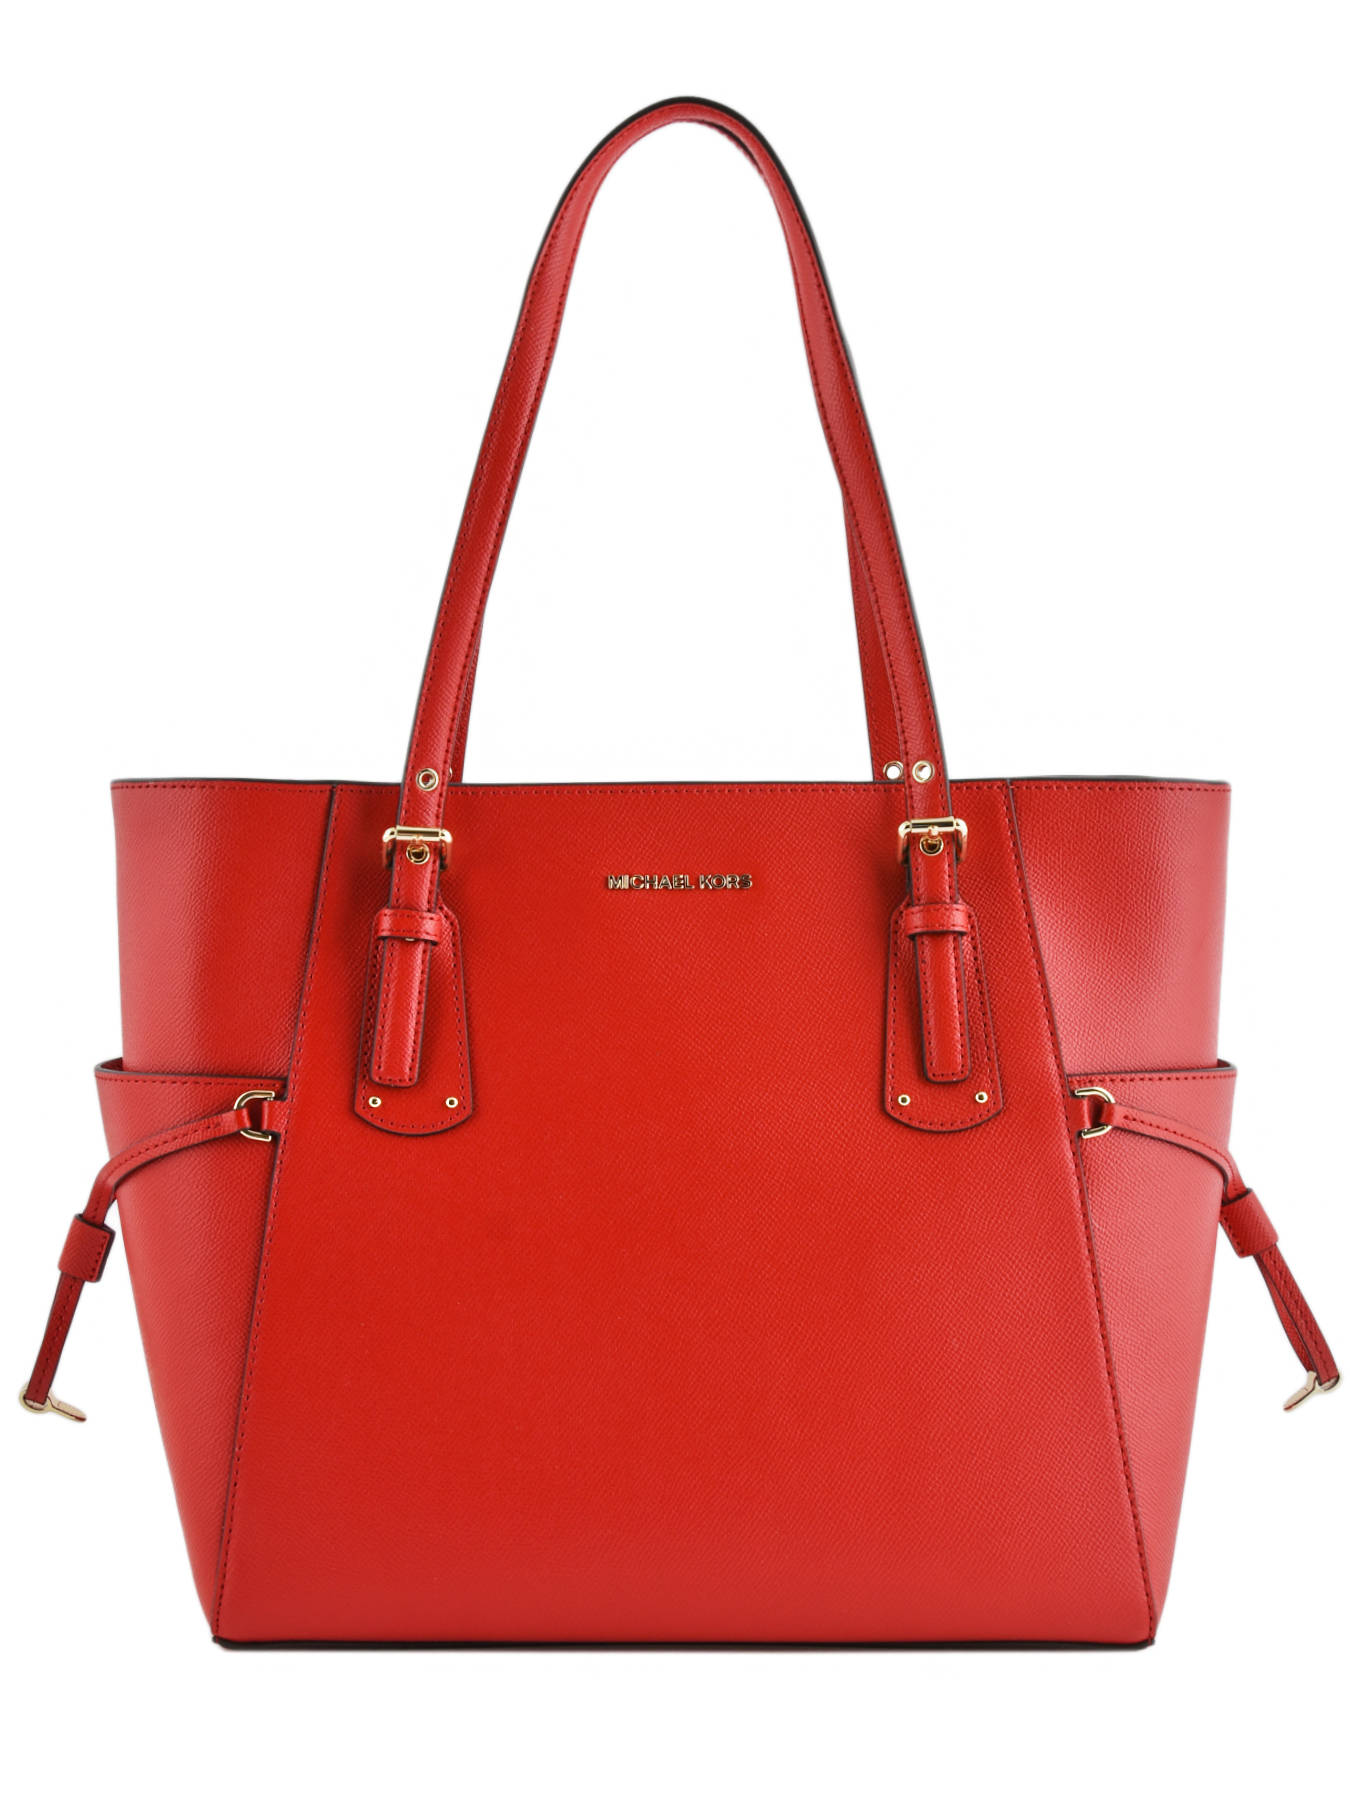 924b9e836623 ... Large Leather Tote Bag Voyager Michael kors Red voyager H7GV6T9L ...